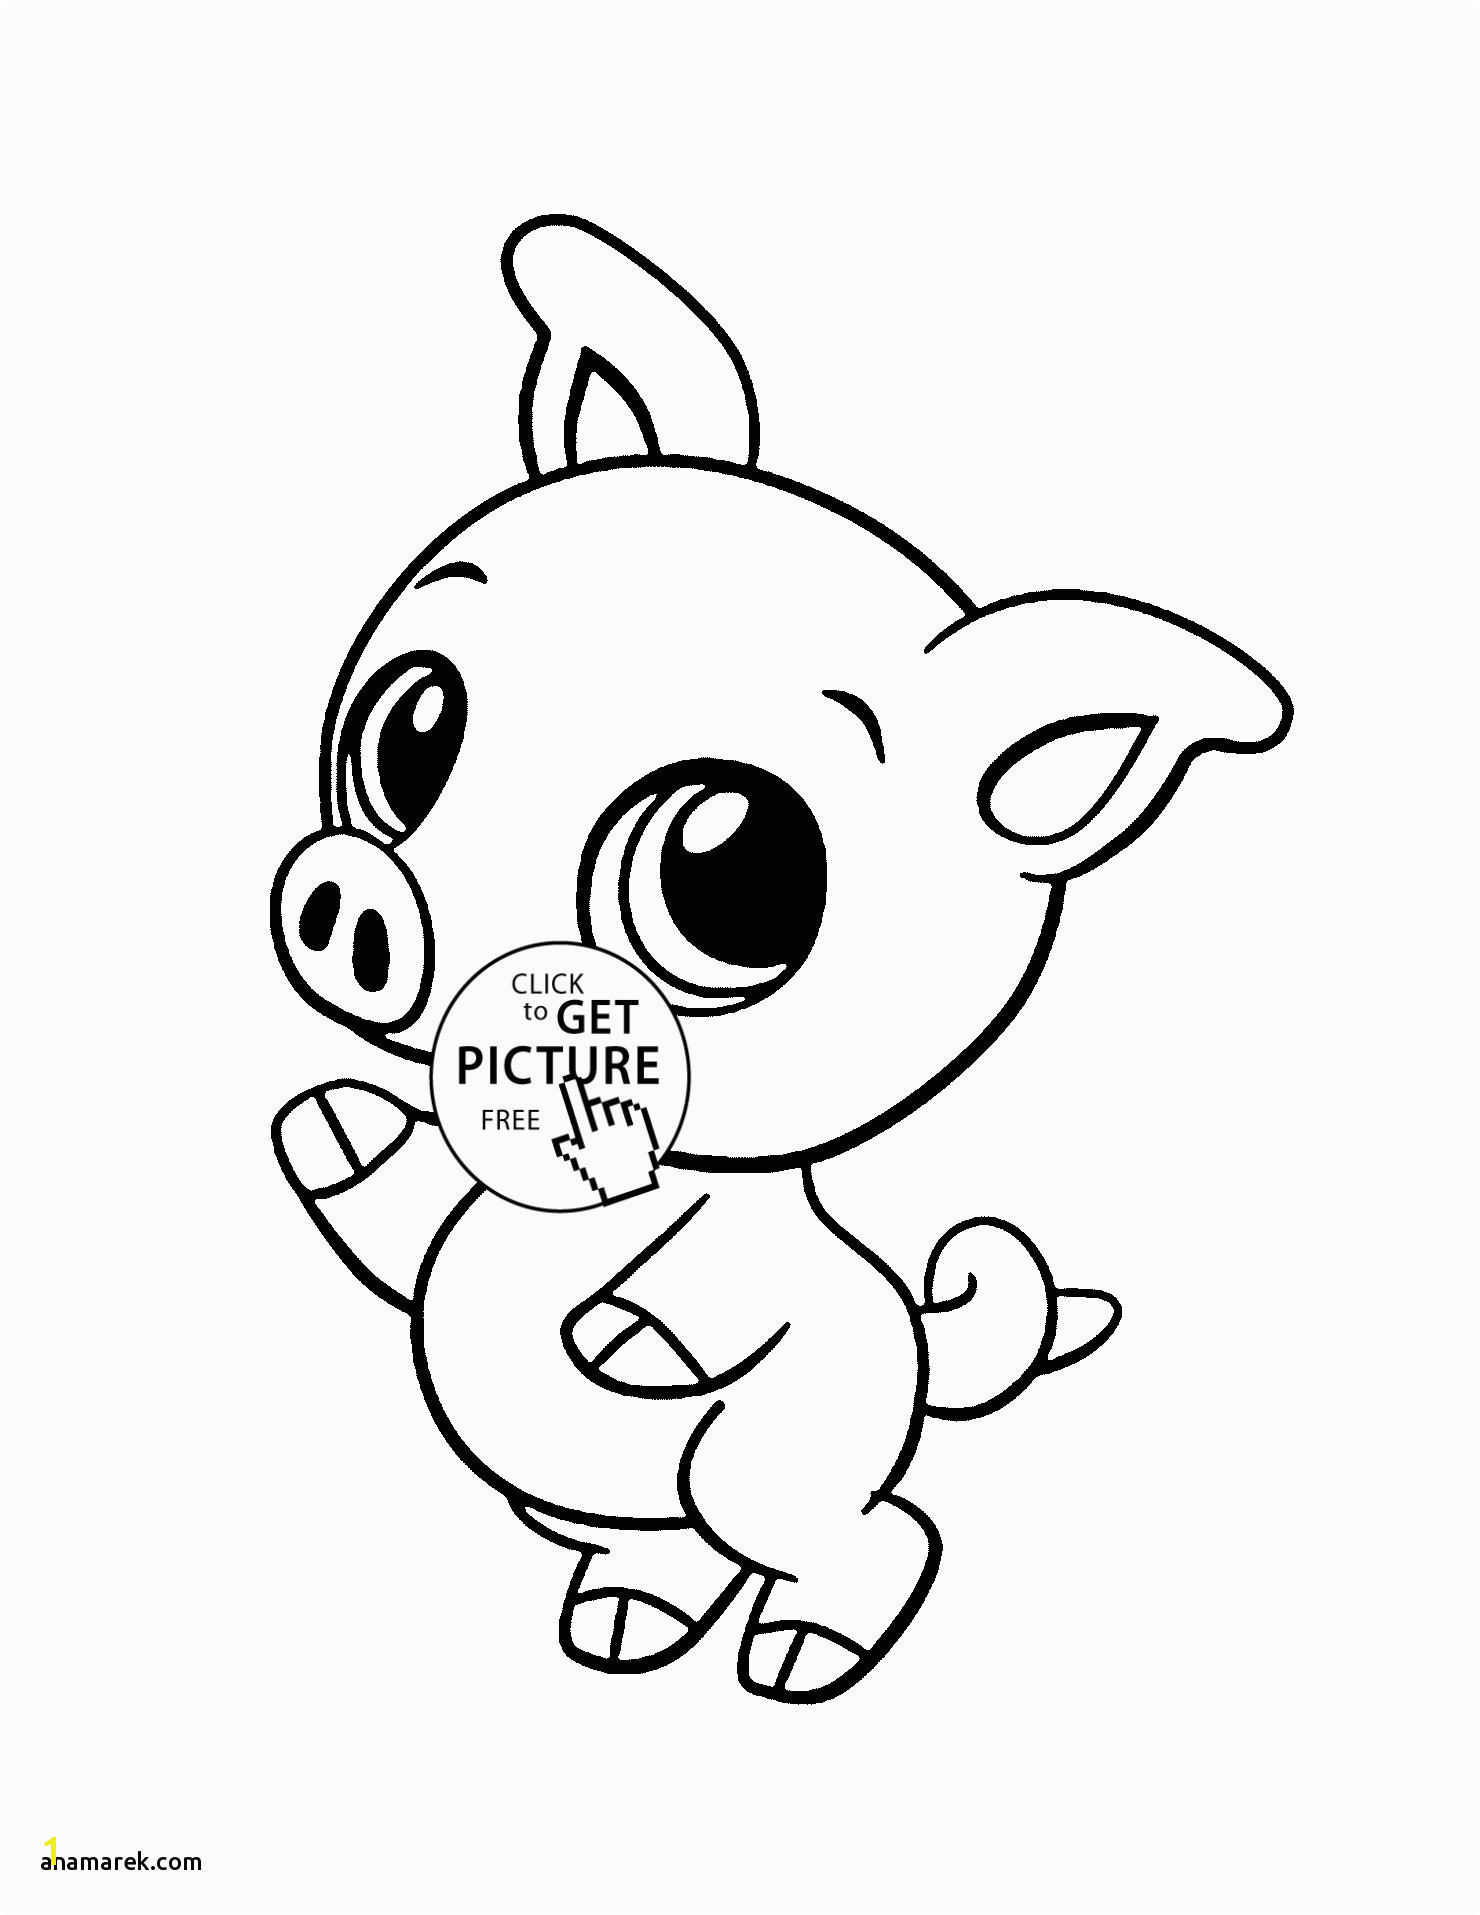 Free Animal Coloring Pages for Kids Free Animal Coloring Pages Fresh Cool Coloring Page Unique